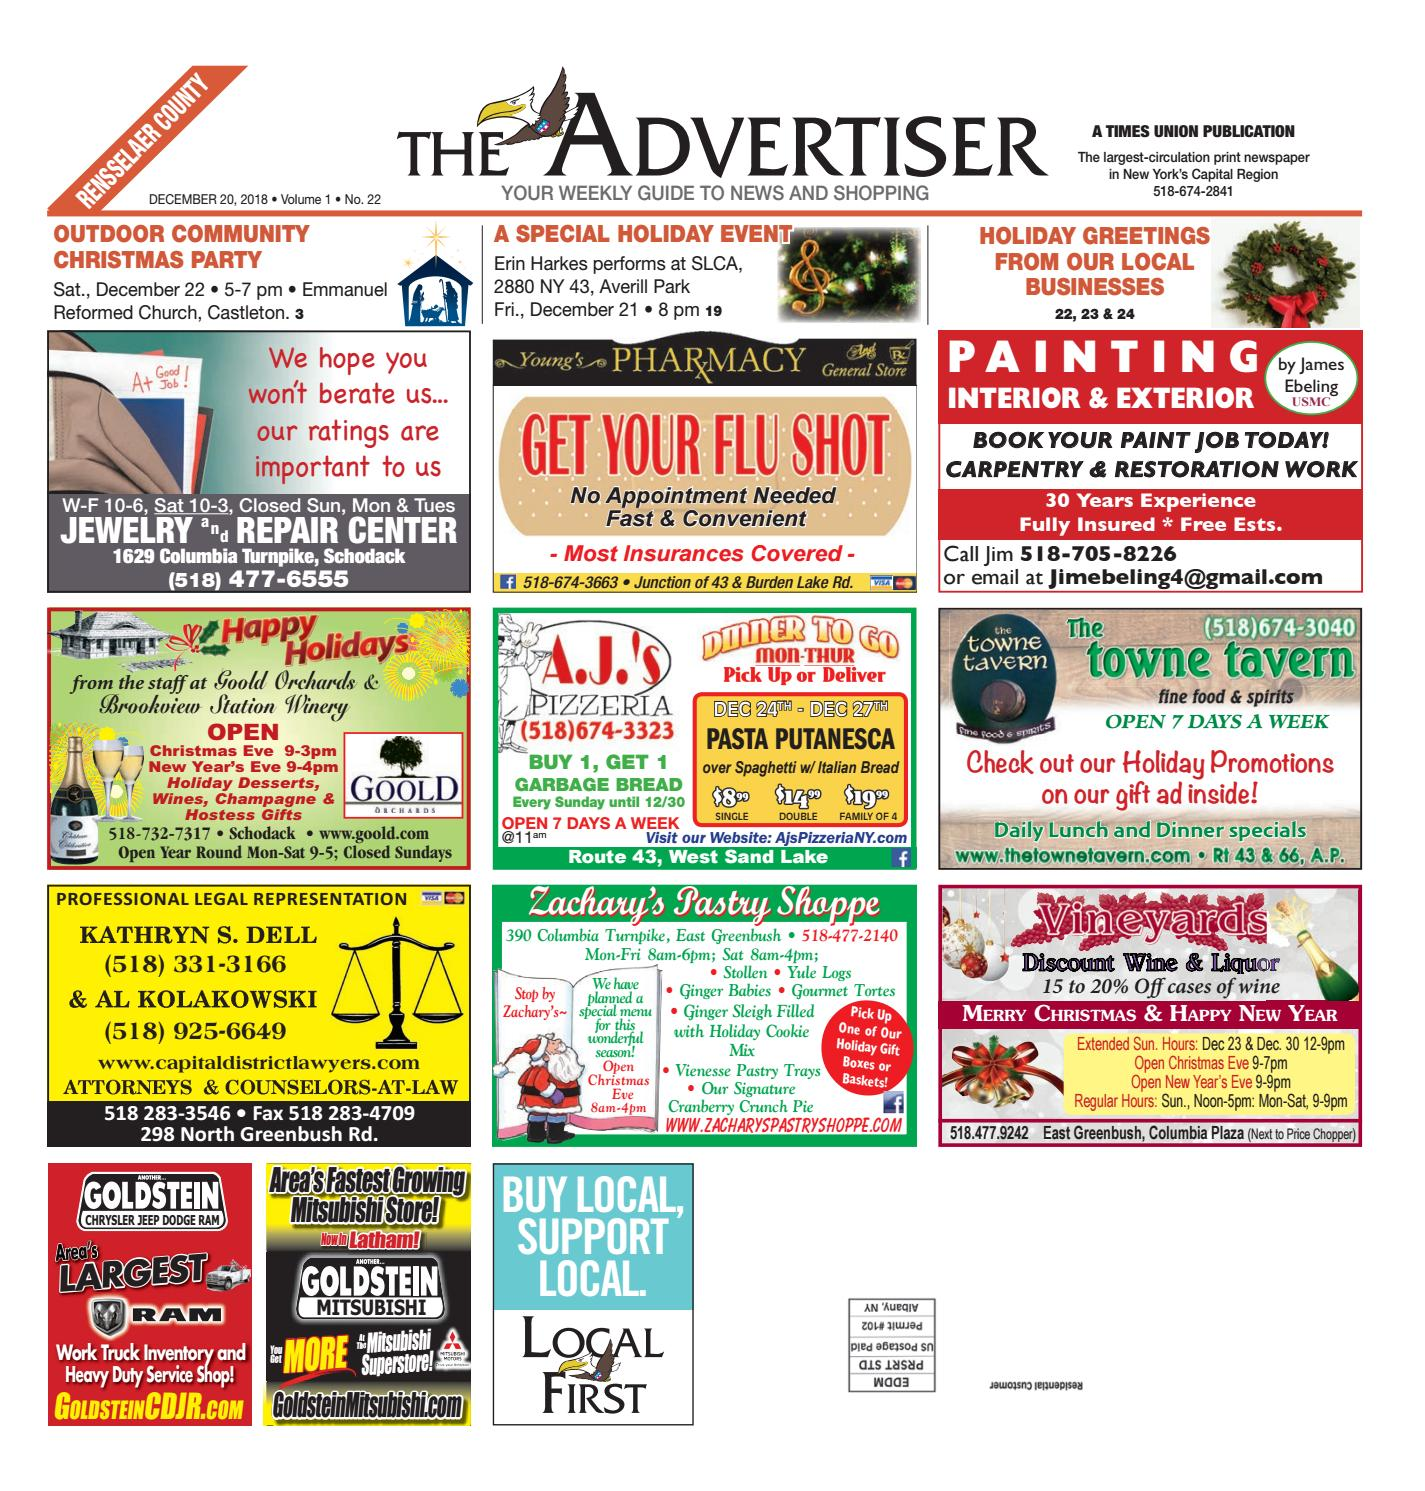 c27086cc252036 Local First The Advertiser 122018 by Capital Region Weekly Newspapers -  issuu